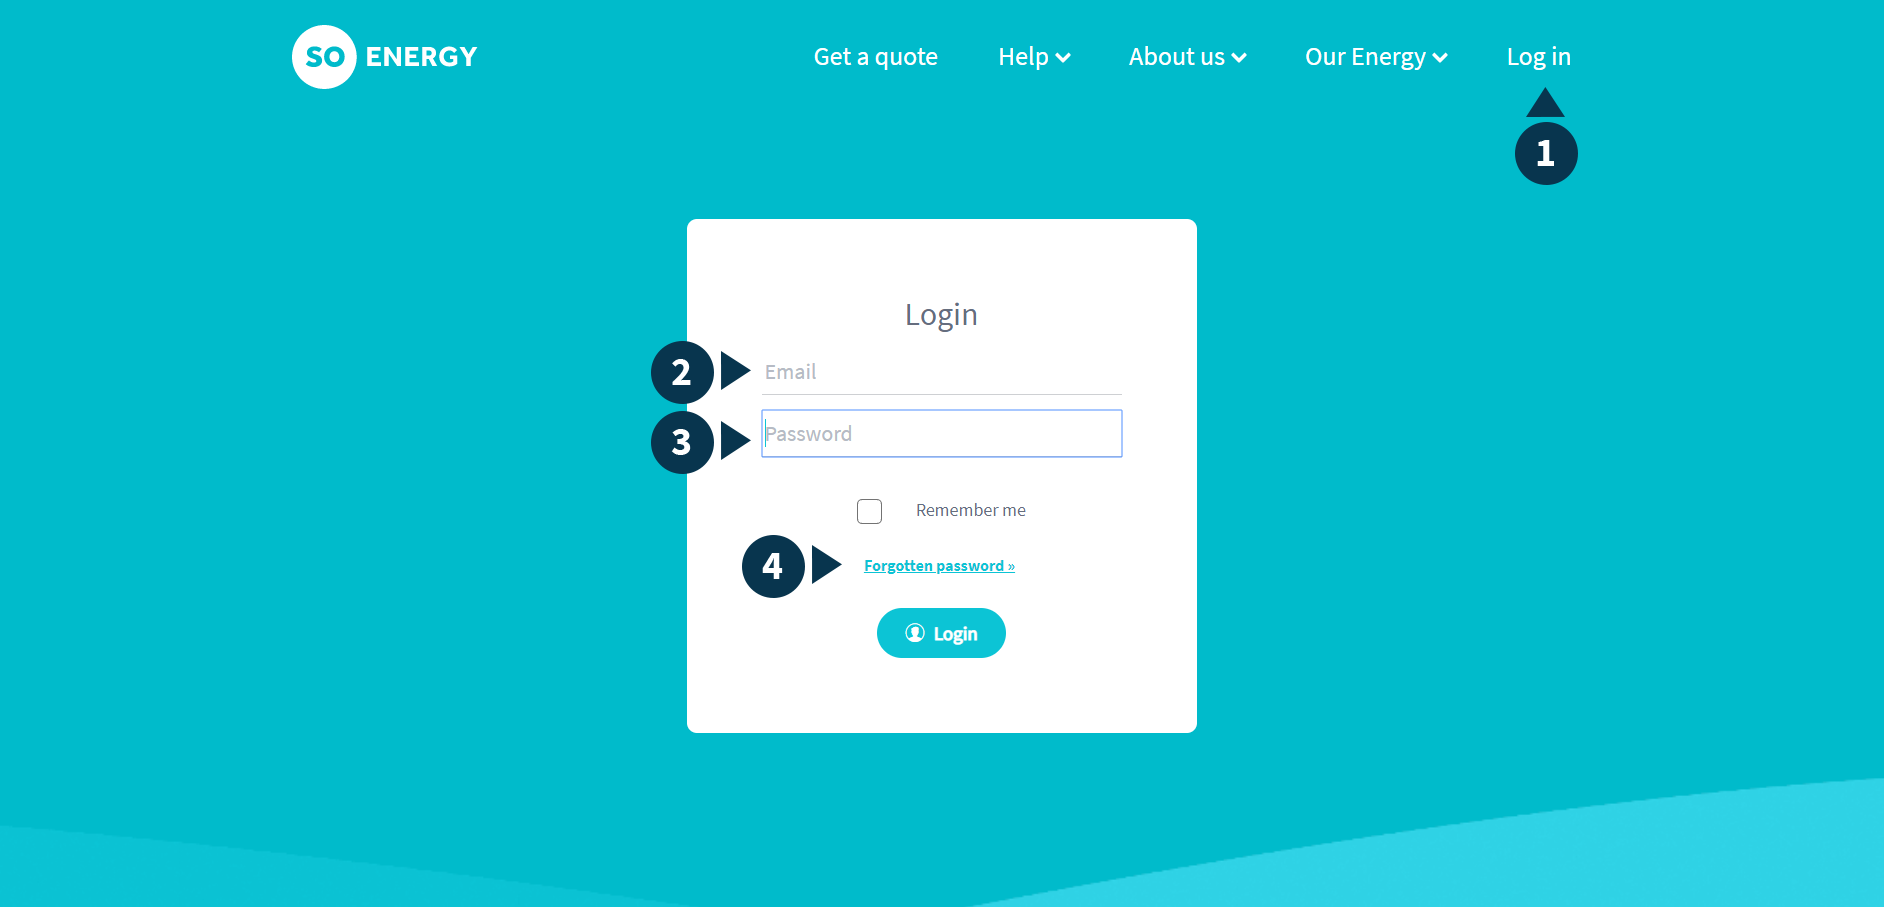 Screenshot of the login page, with input fields and links numbered from 1 to 4